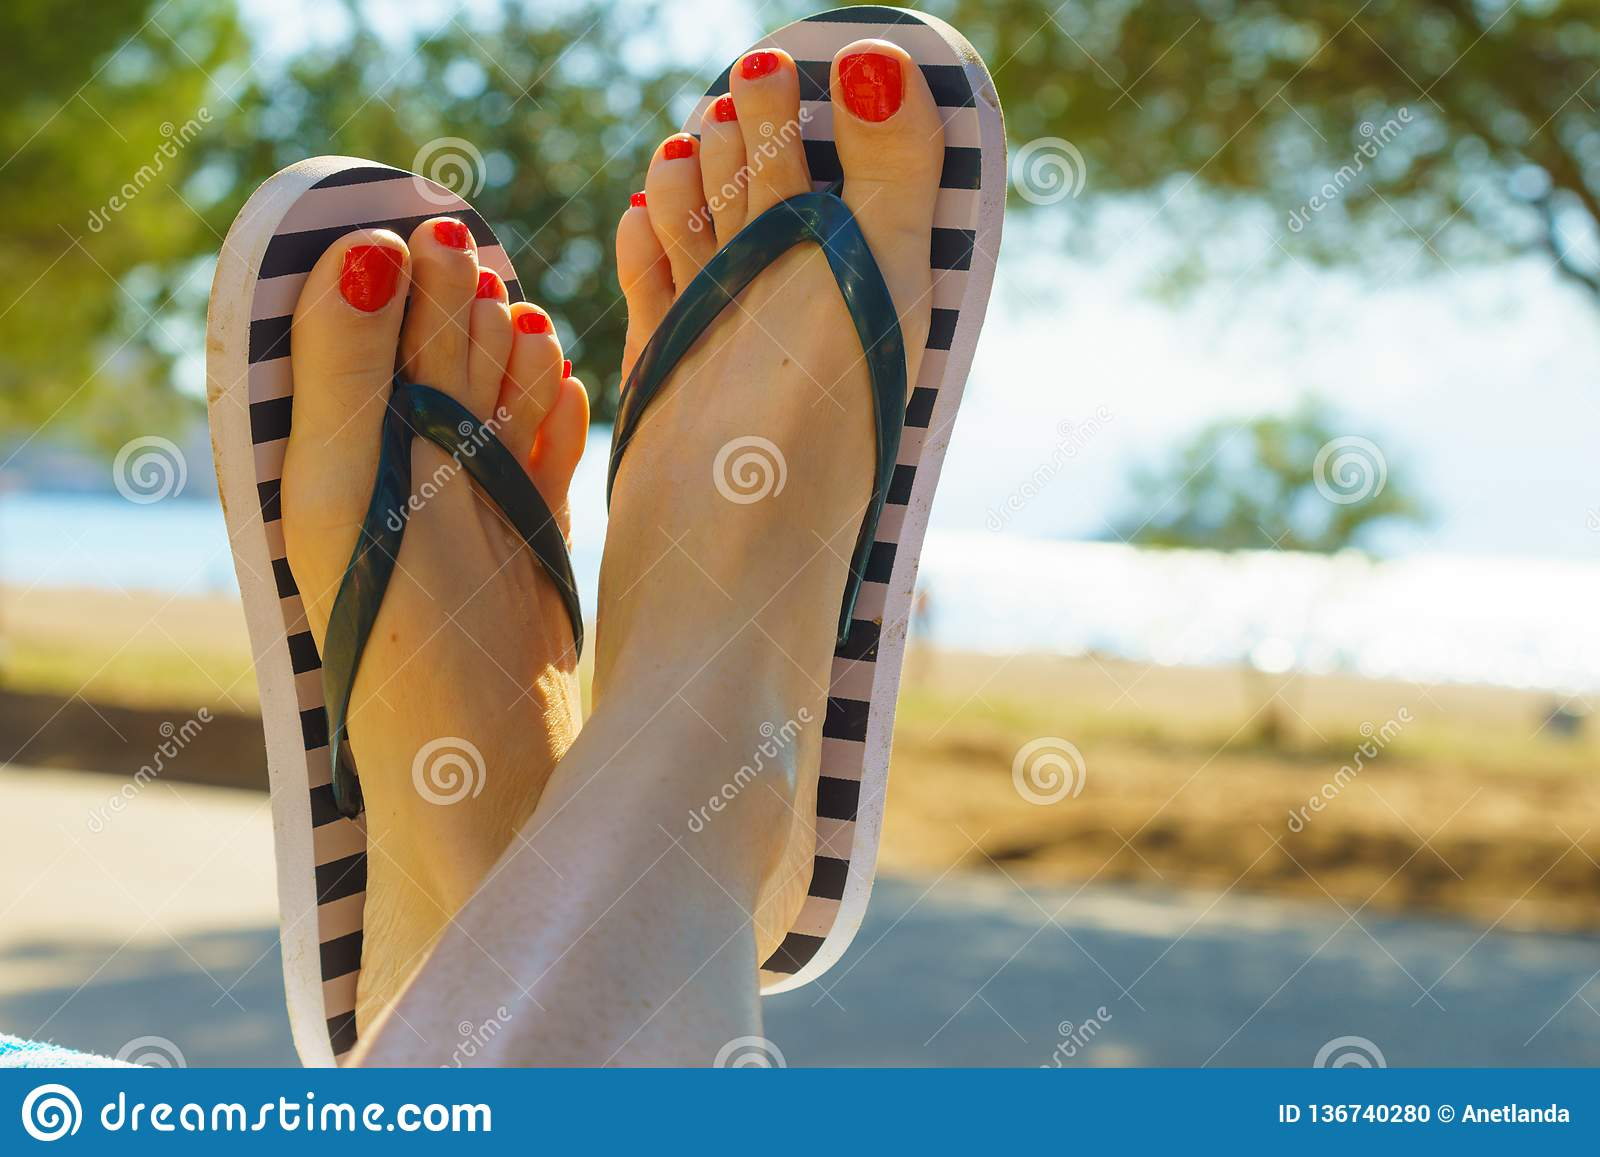 9b70f352fbb82a Unrecognizable woman wearing stripped flip flops and having painted toes  with red nail polish. Female relaxing on beach